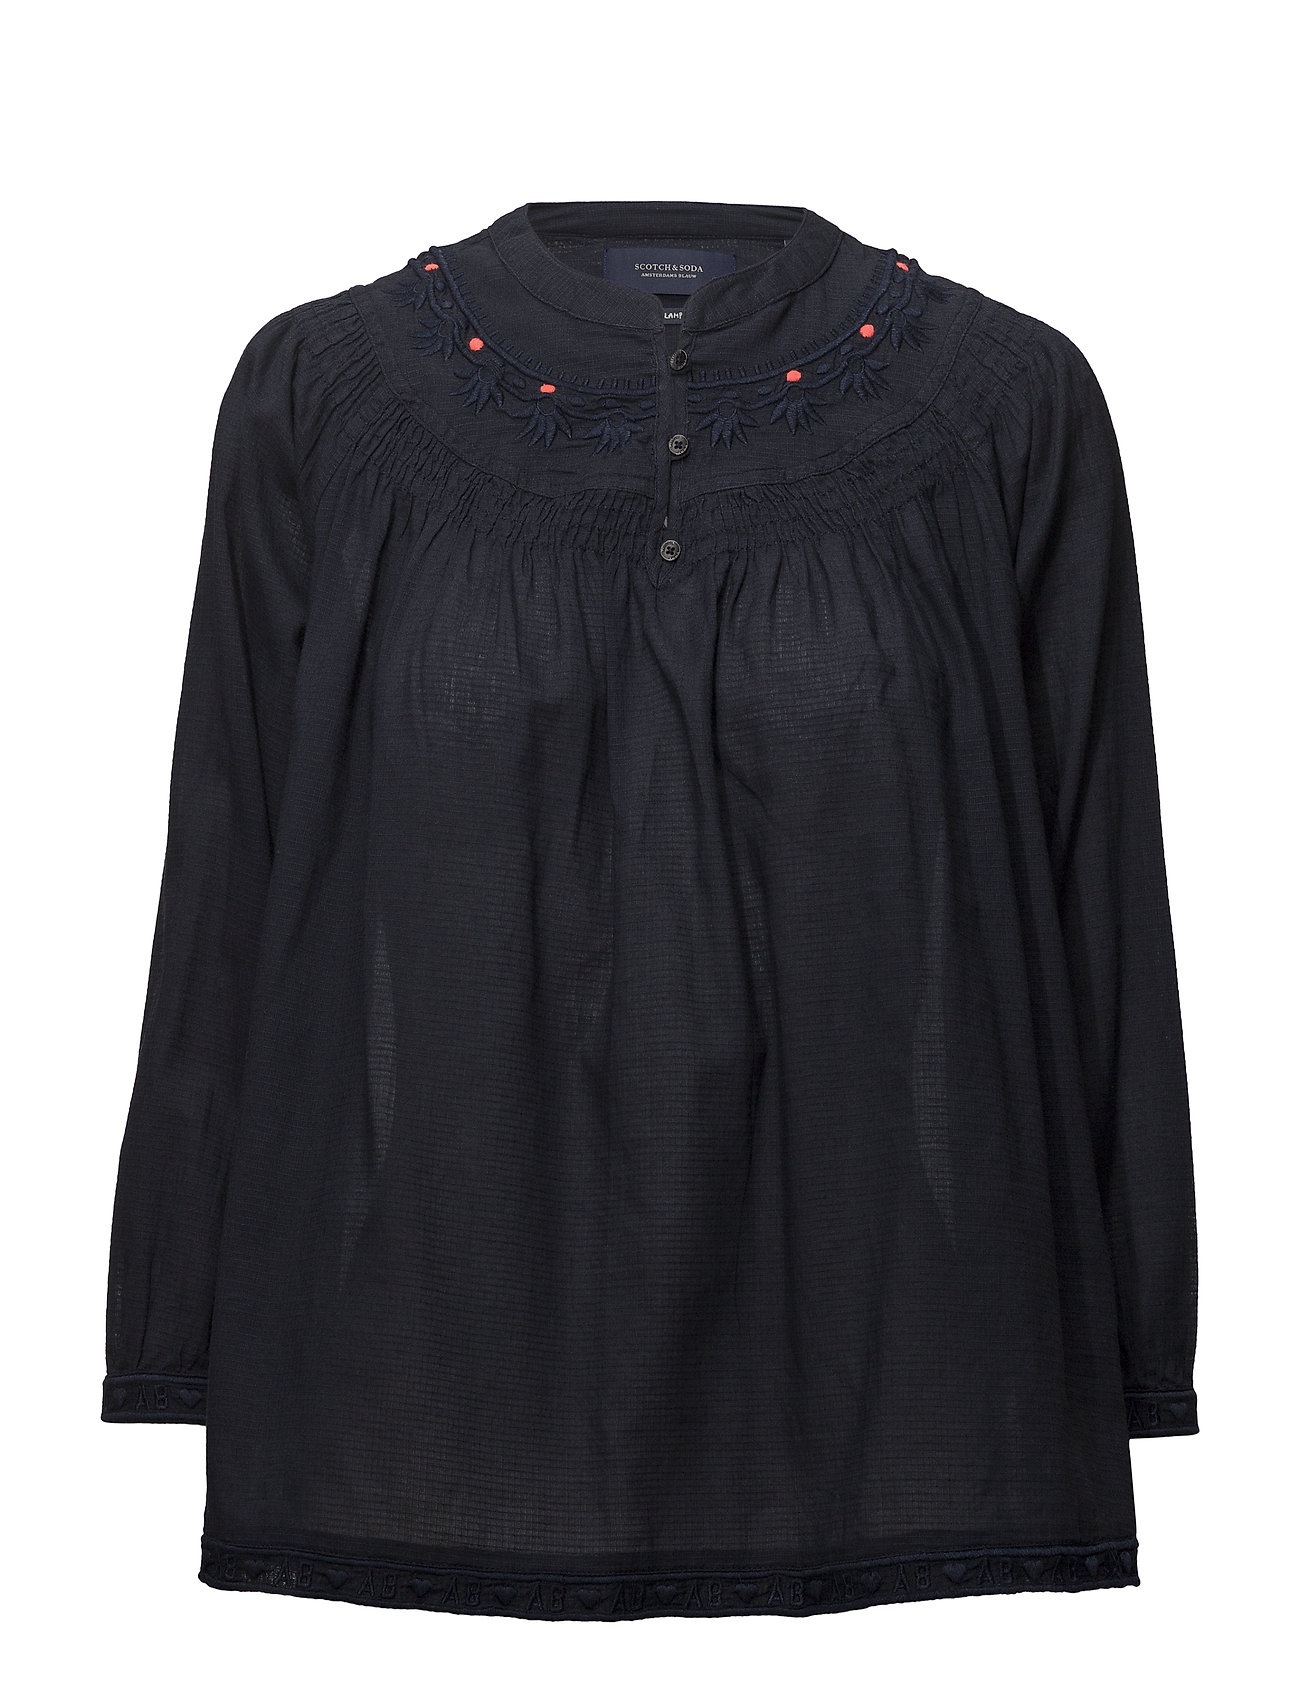 Scotch & Soda Woven top with subtle embroidery - NIGHT